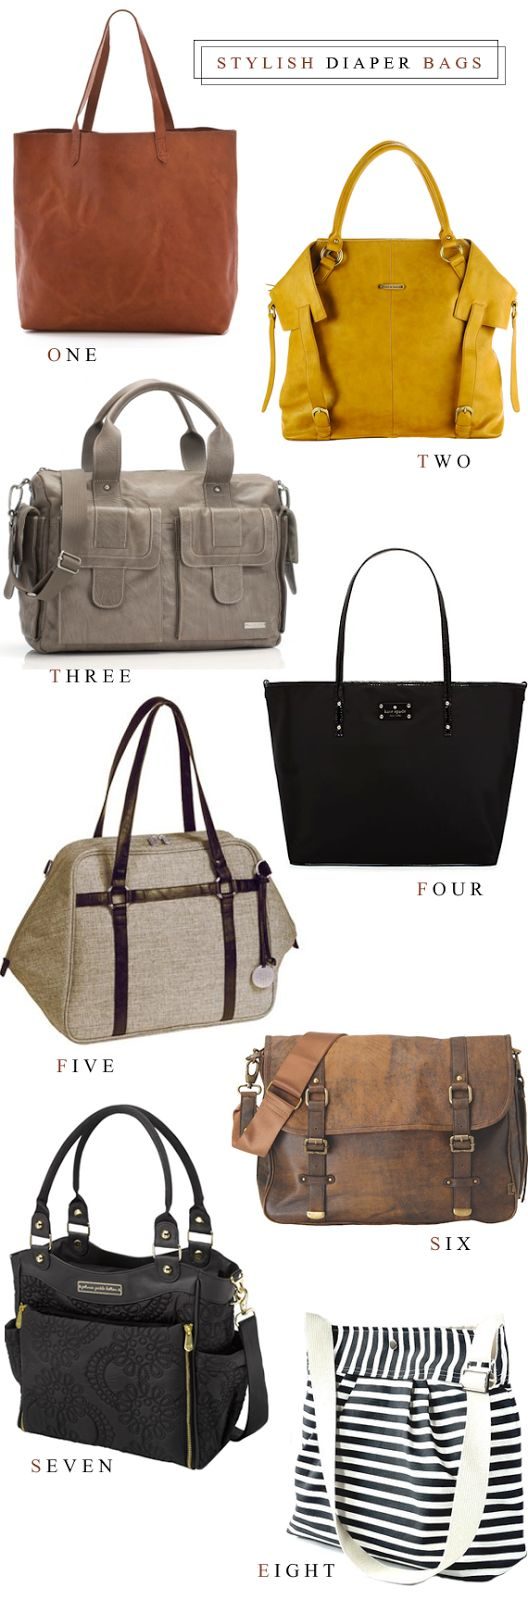 8 Stylish Diaper Bags // Bubby and Bean  Keep seeing this pinned with the wrong link. This links back to the blog with sources for all the bags.